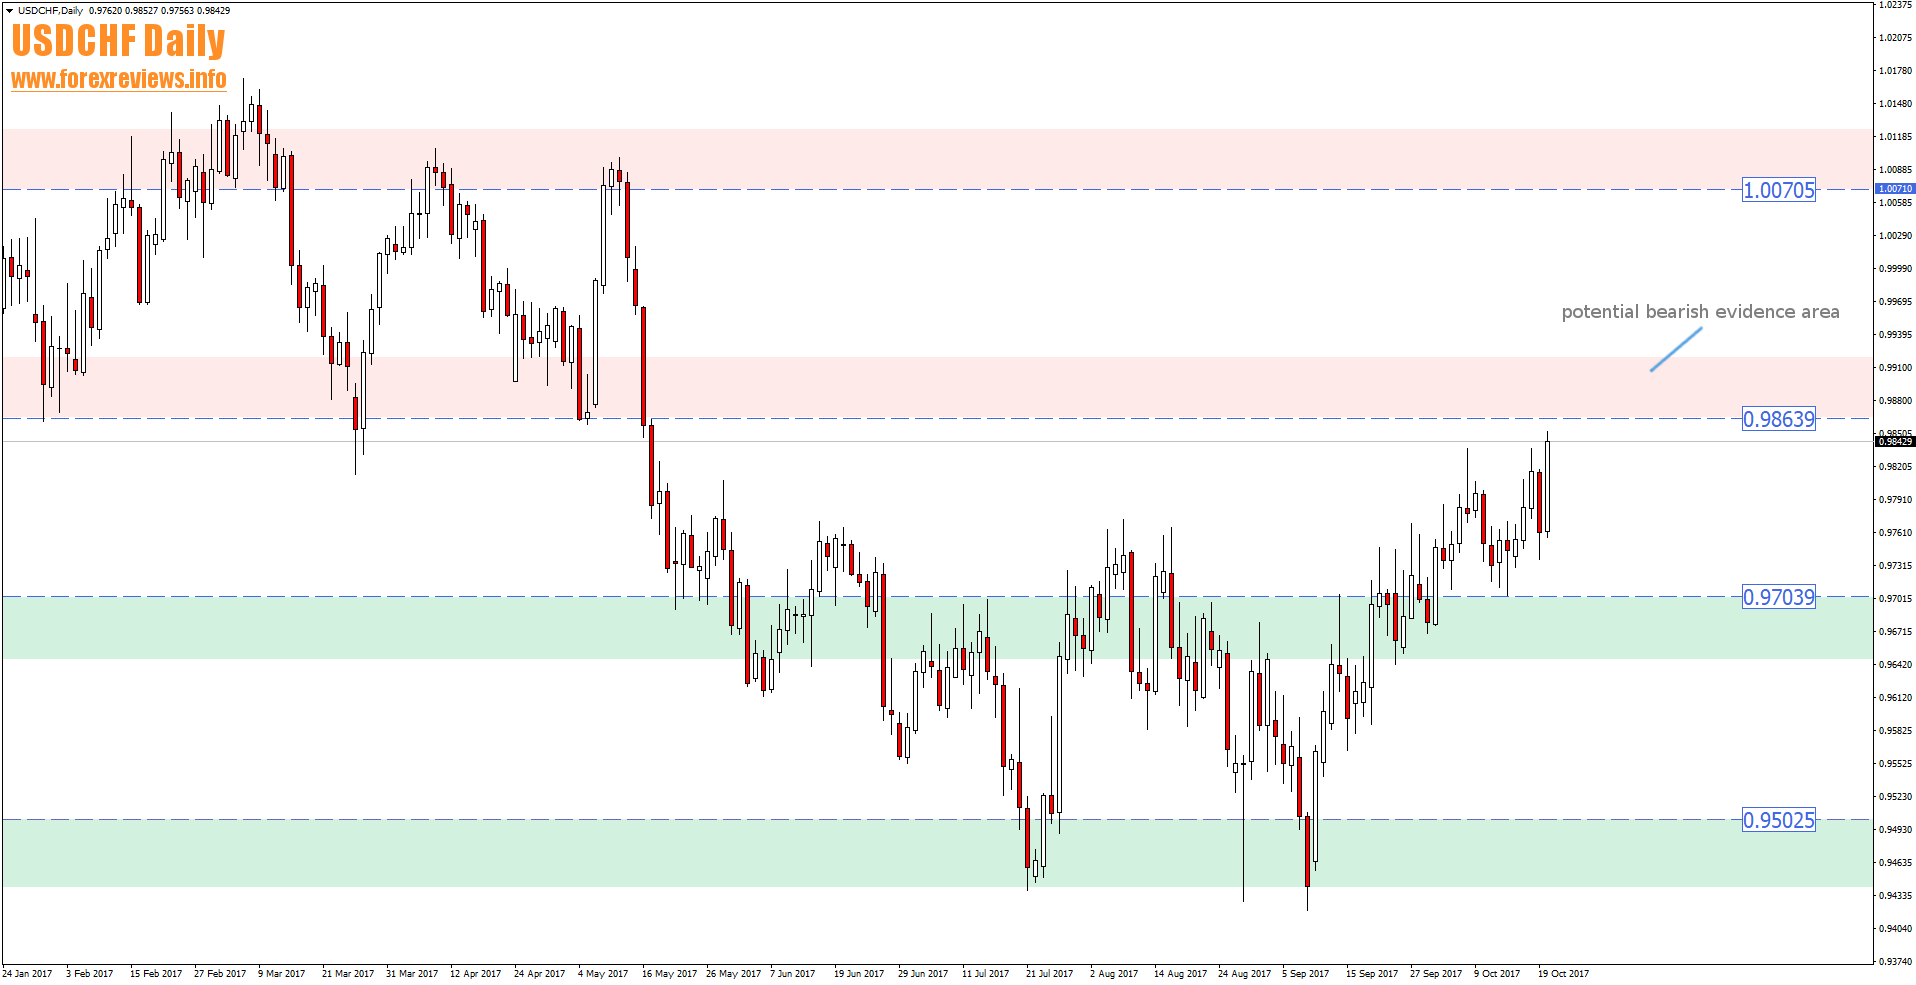 usdchf daily trading areas 23rd to 27th of october